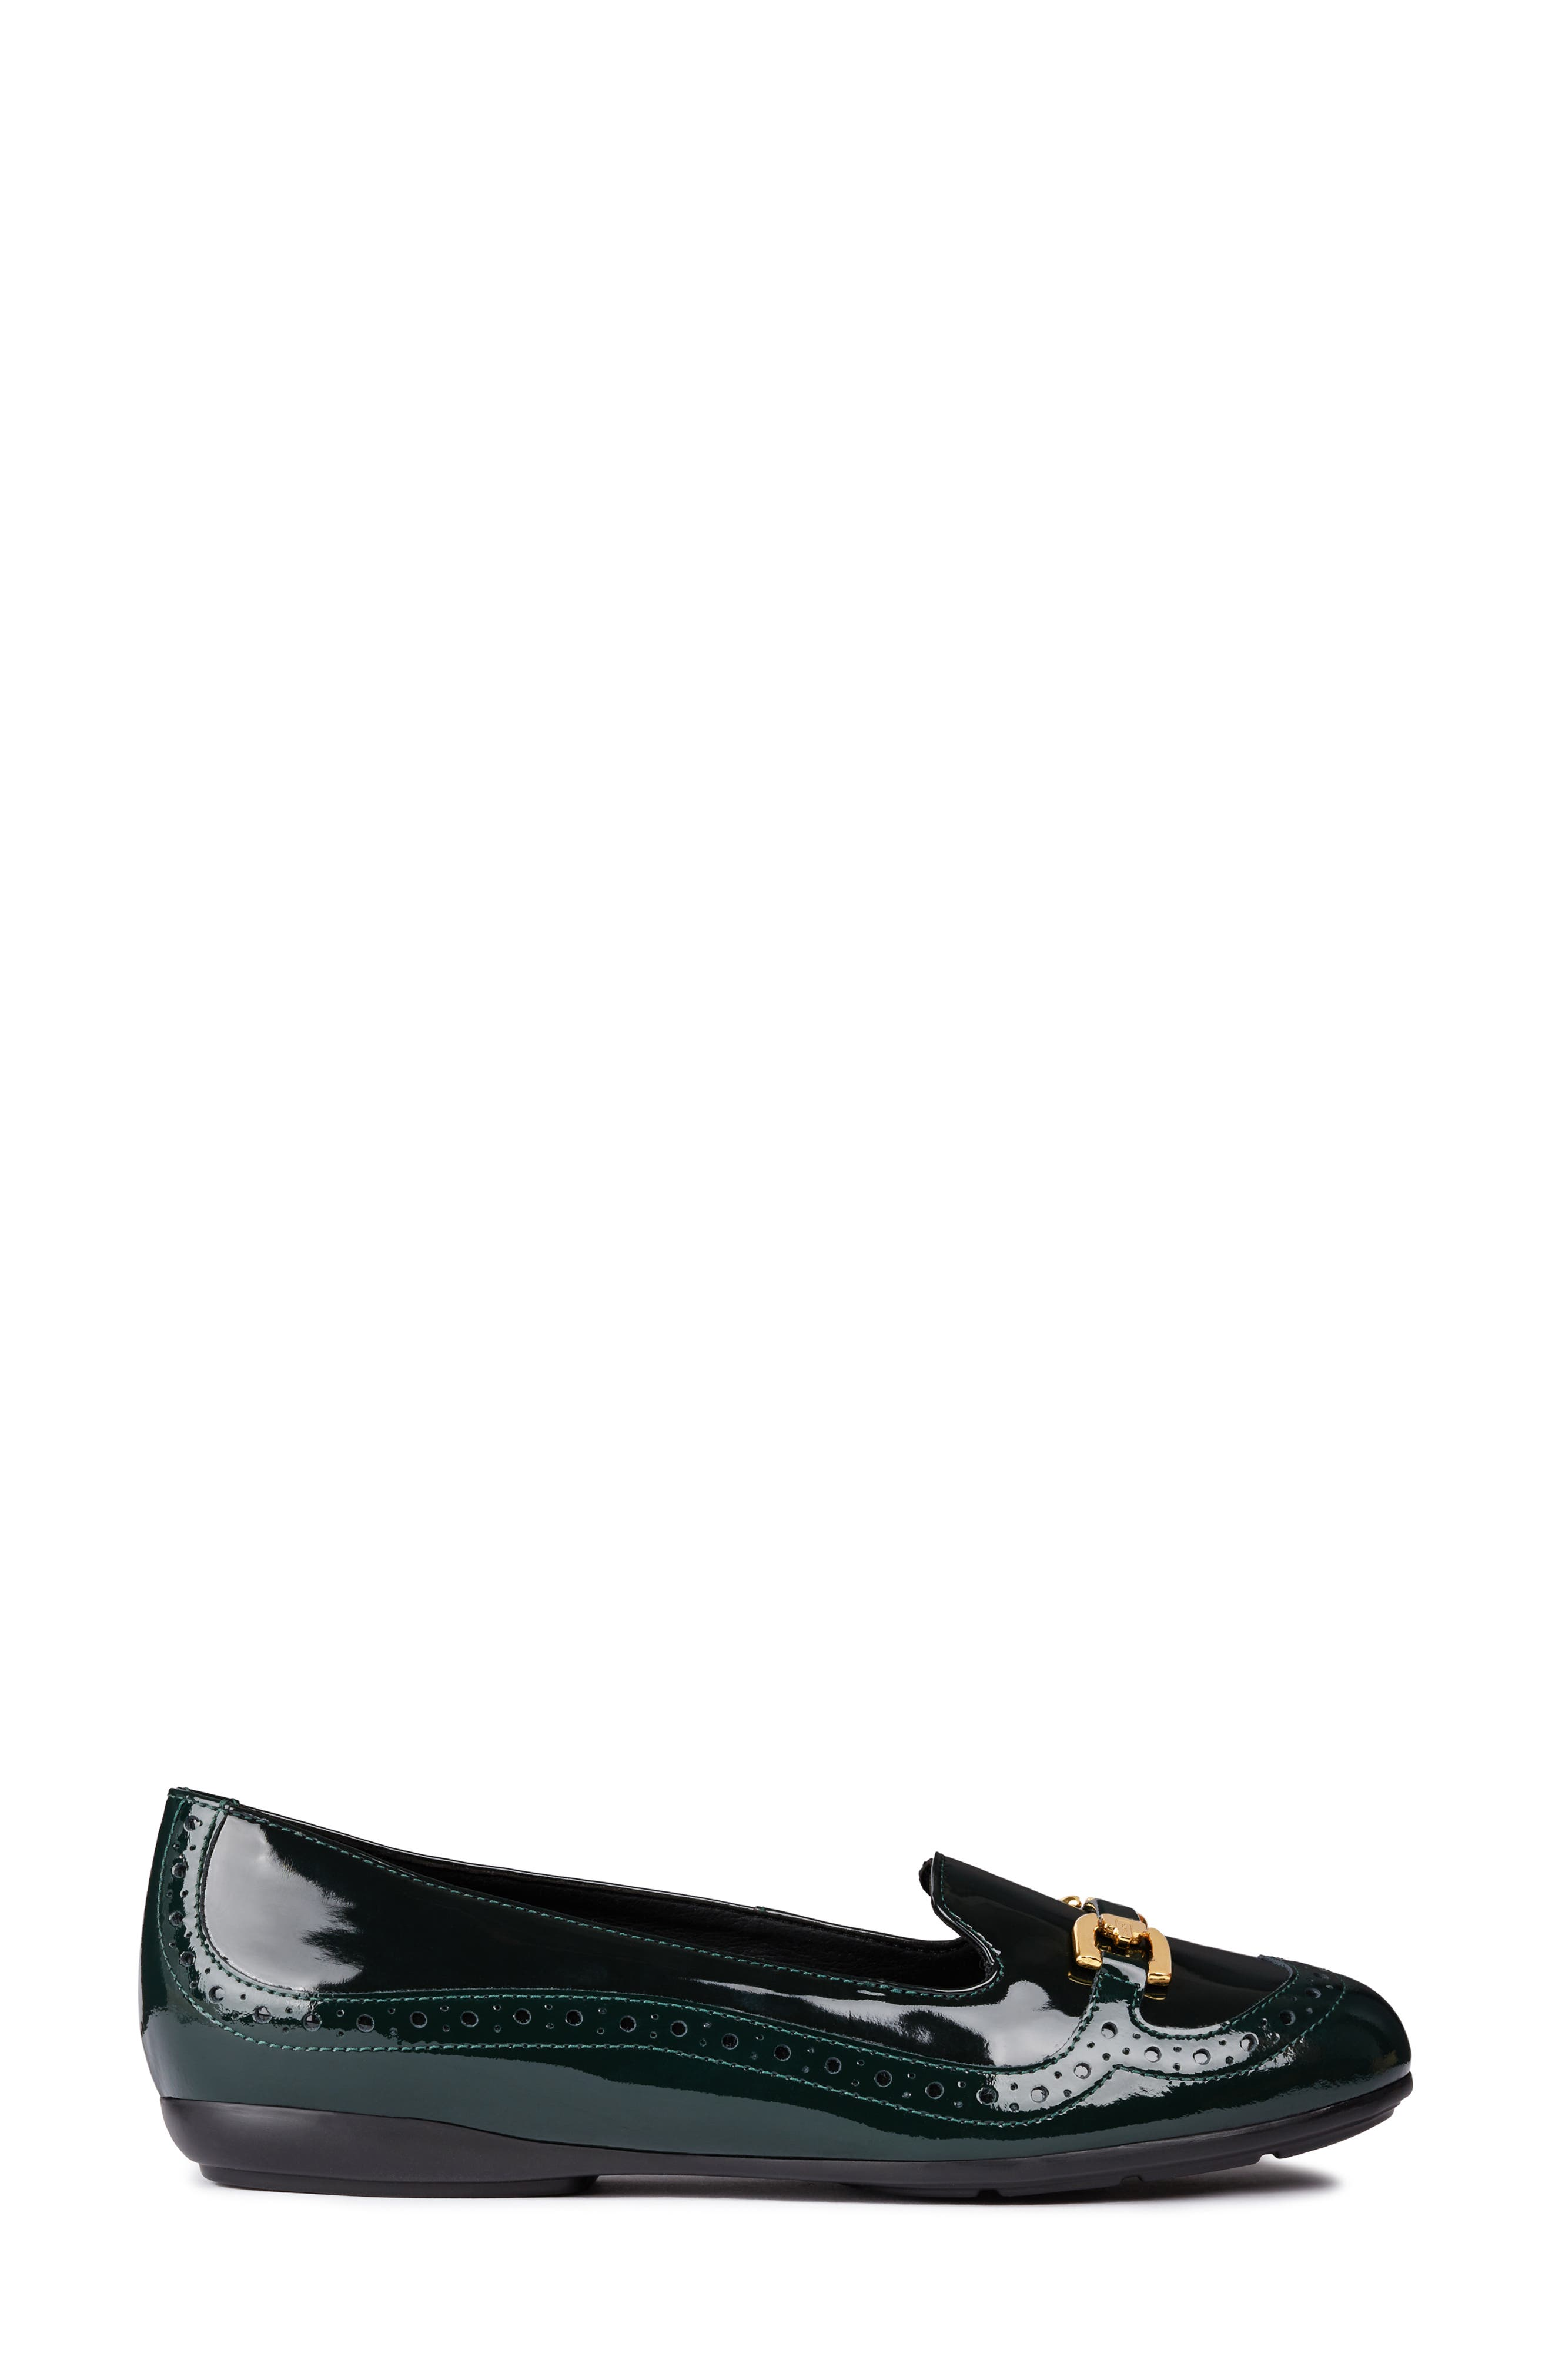 Annytah Loafer,                             Alternate thumbnail 3, color,                             FOREST FAUX PATENT LEATHER